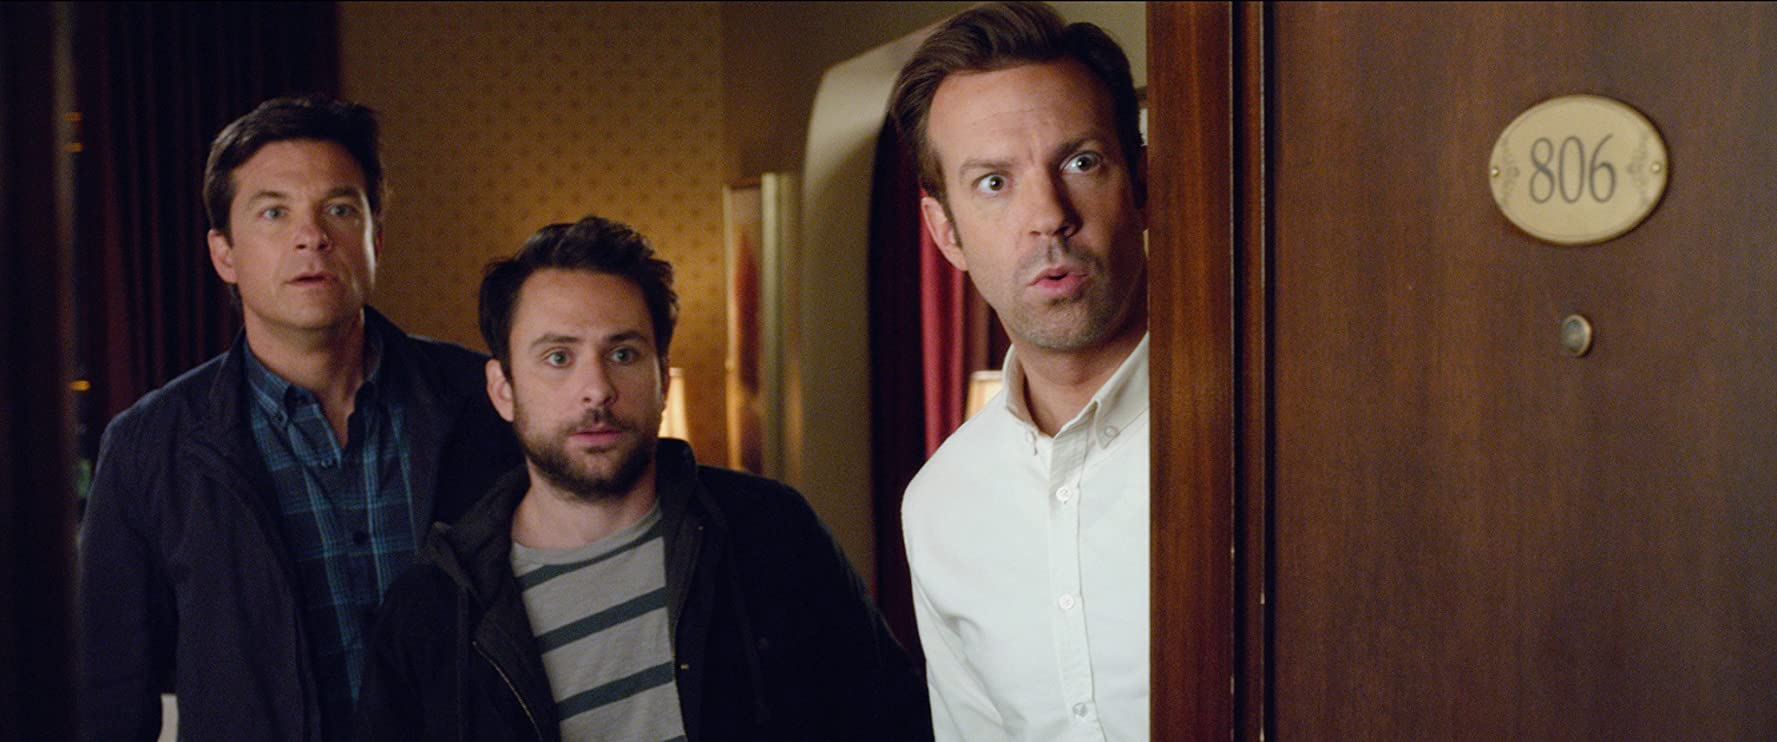 Jason Bateman, Charlie Day, and Jason Sudeikis in Horrible Bosses 2 (2014)